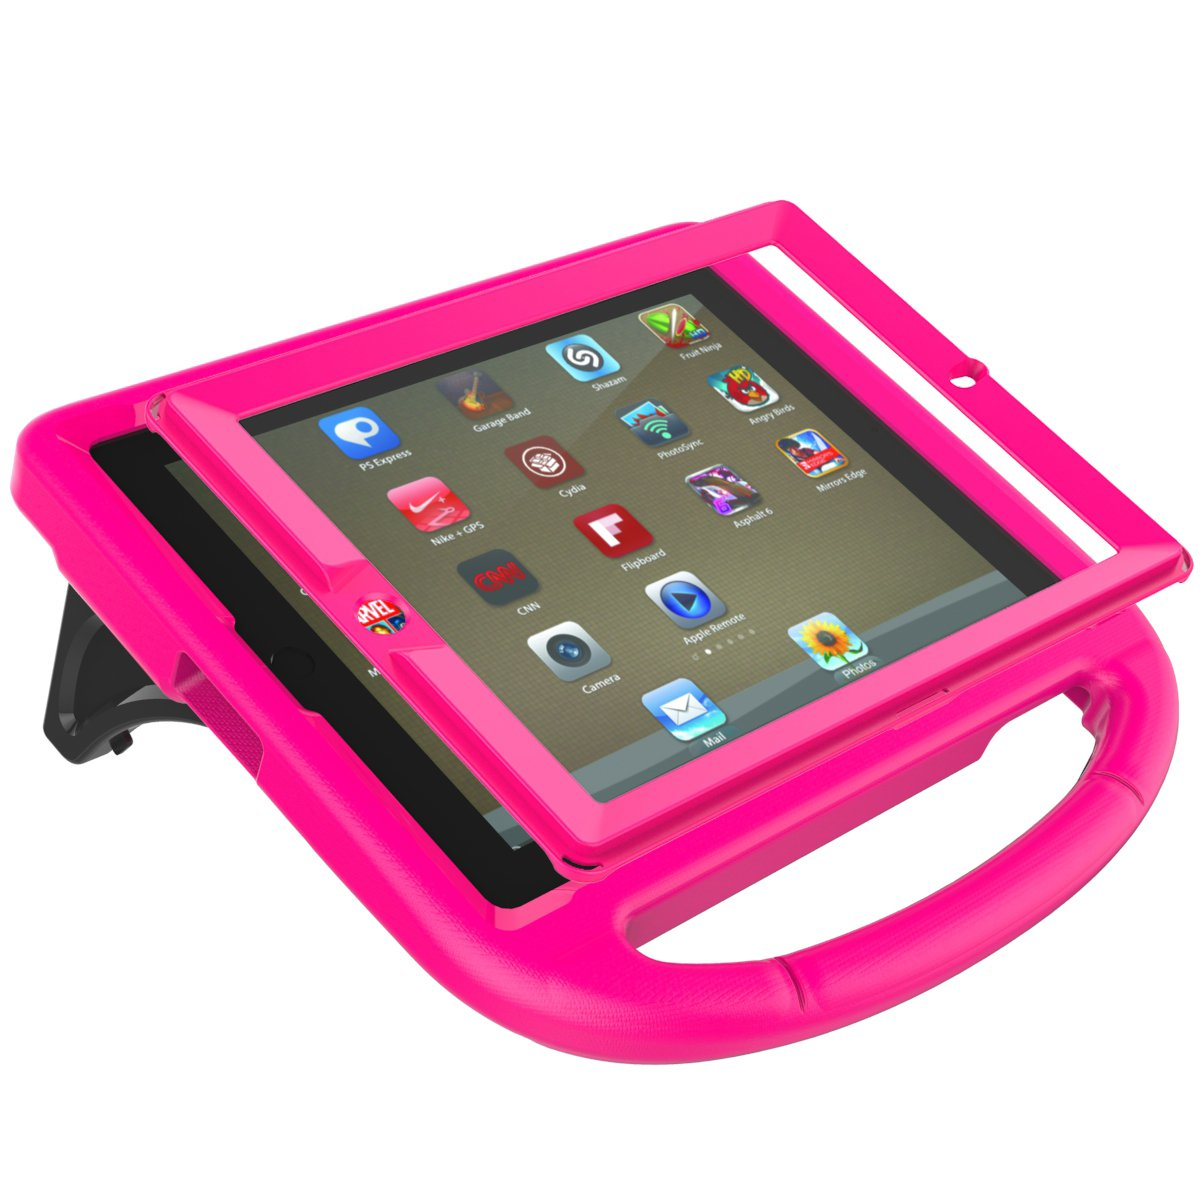 LTROP iPad 2 3 4 Kids Case - Light Weight Shock Proof Handle Friendly Convertible Stand Kids Case with Bulit in Screen Protector for iPad 2, iPad 3rd Generation, iPad 4th Generation,Rose by LTROP (Image #5)